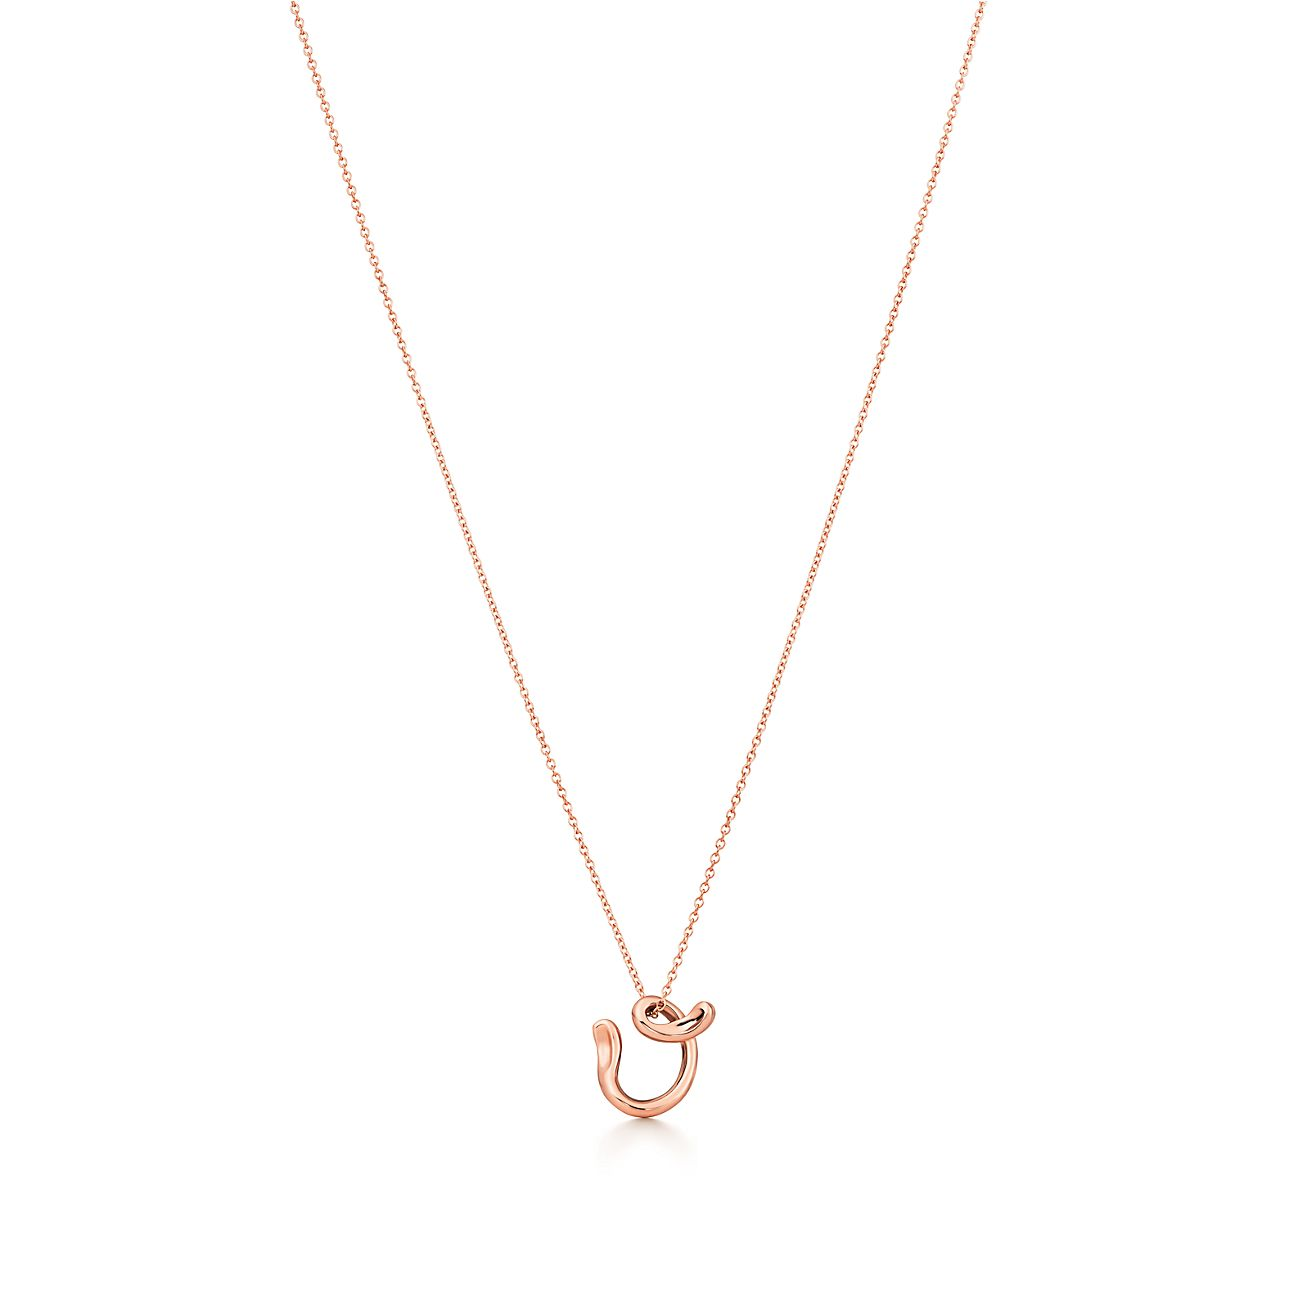 Elsa Peretti Alphabet pendant in 18k rose gold Letters A-Z available - Size W Tiffany & Co.